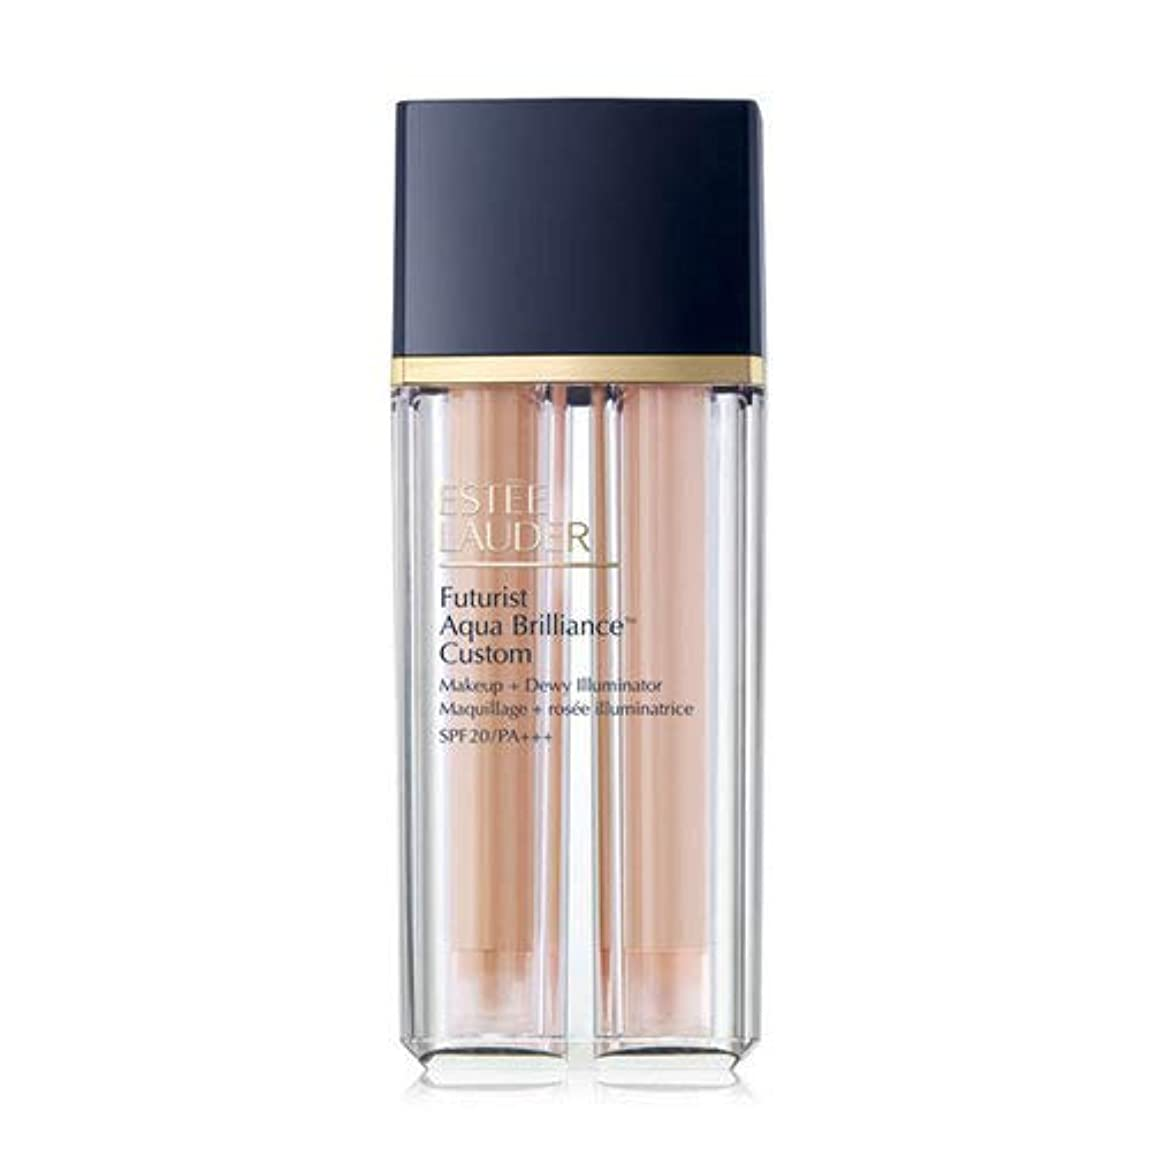 令状盗難操るEstee Lauder(エスティローダー) Futurist Aqua Brilliance Custom Foundation & Illuminator Duo SPF20/PA+++ 15ml ×2EA #1C1 Cool Bone